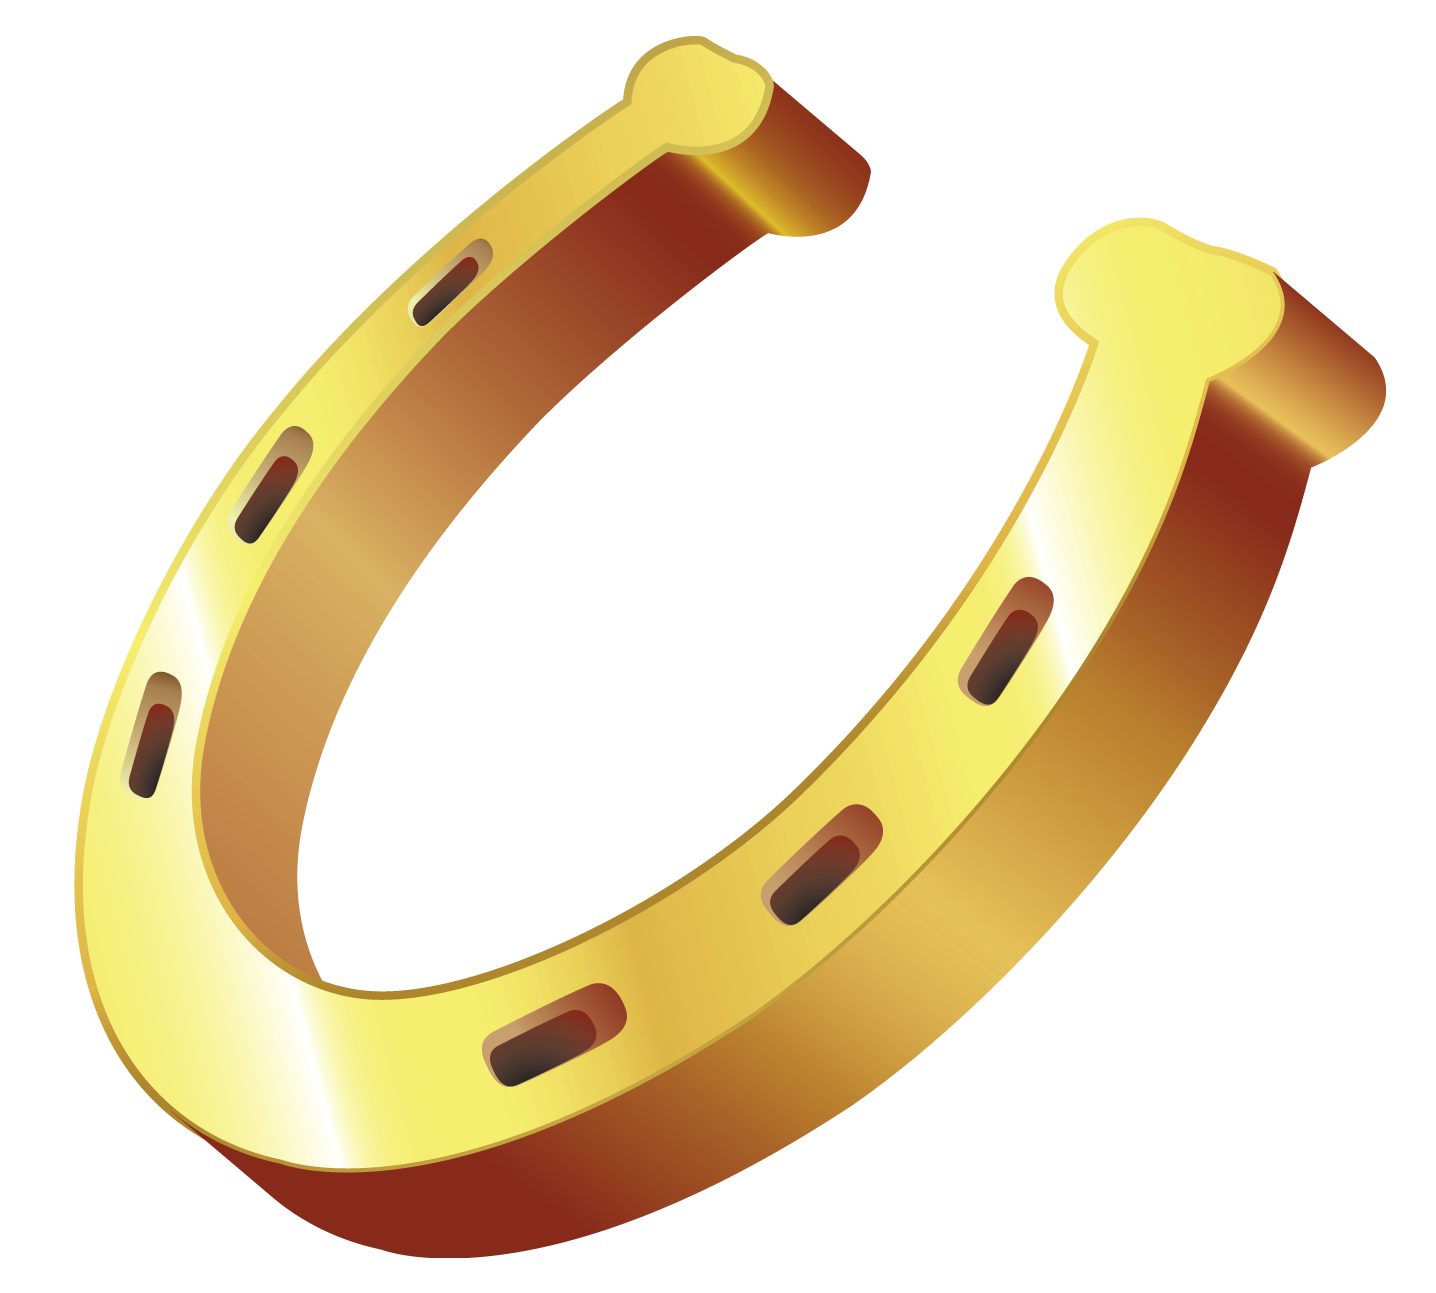 Gold clipart cute. Horseshoe png gallery yopriceville